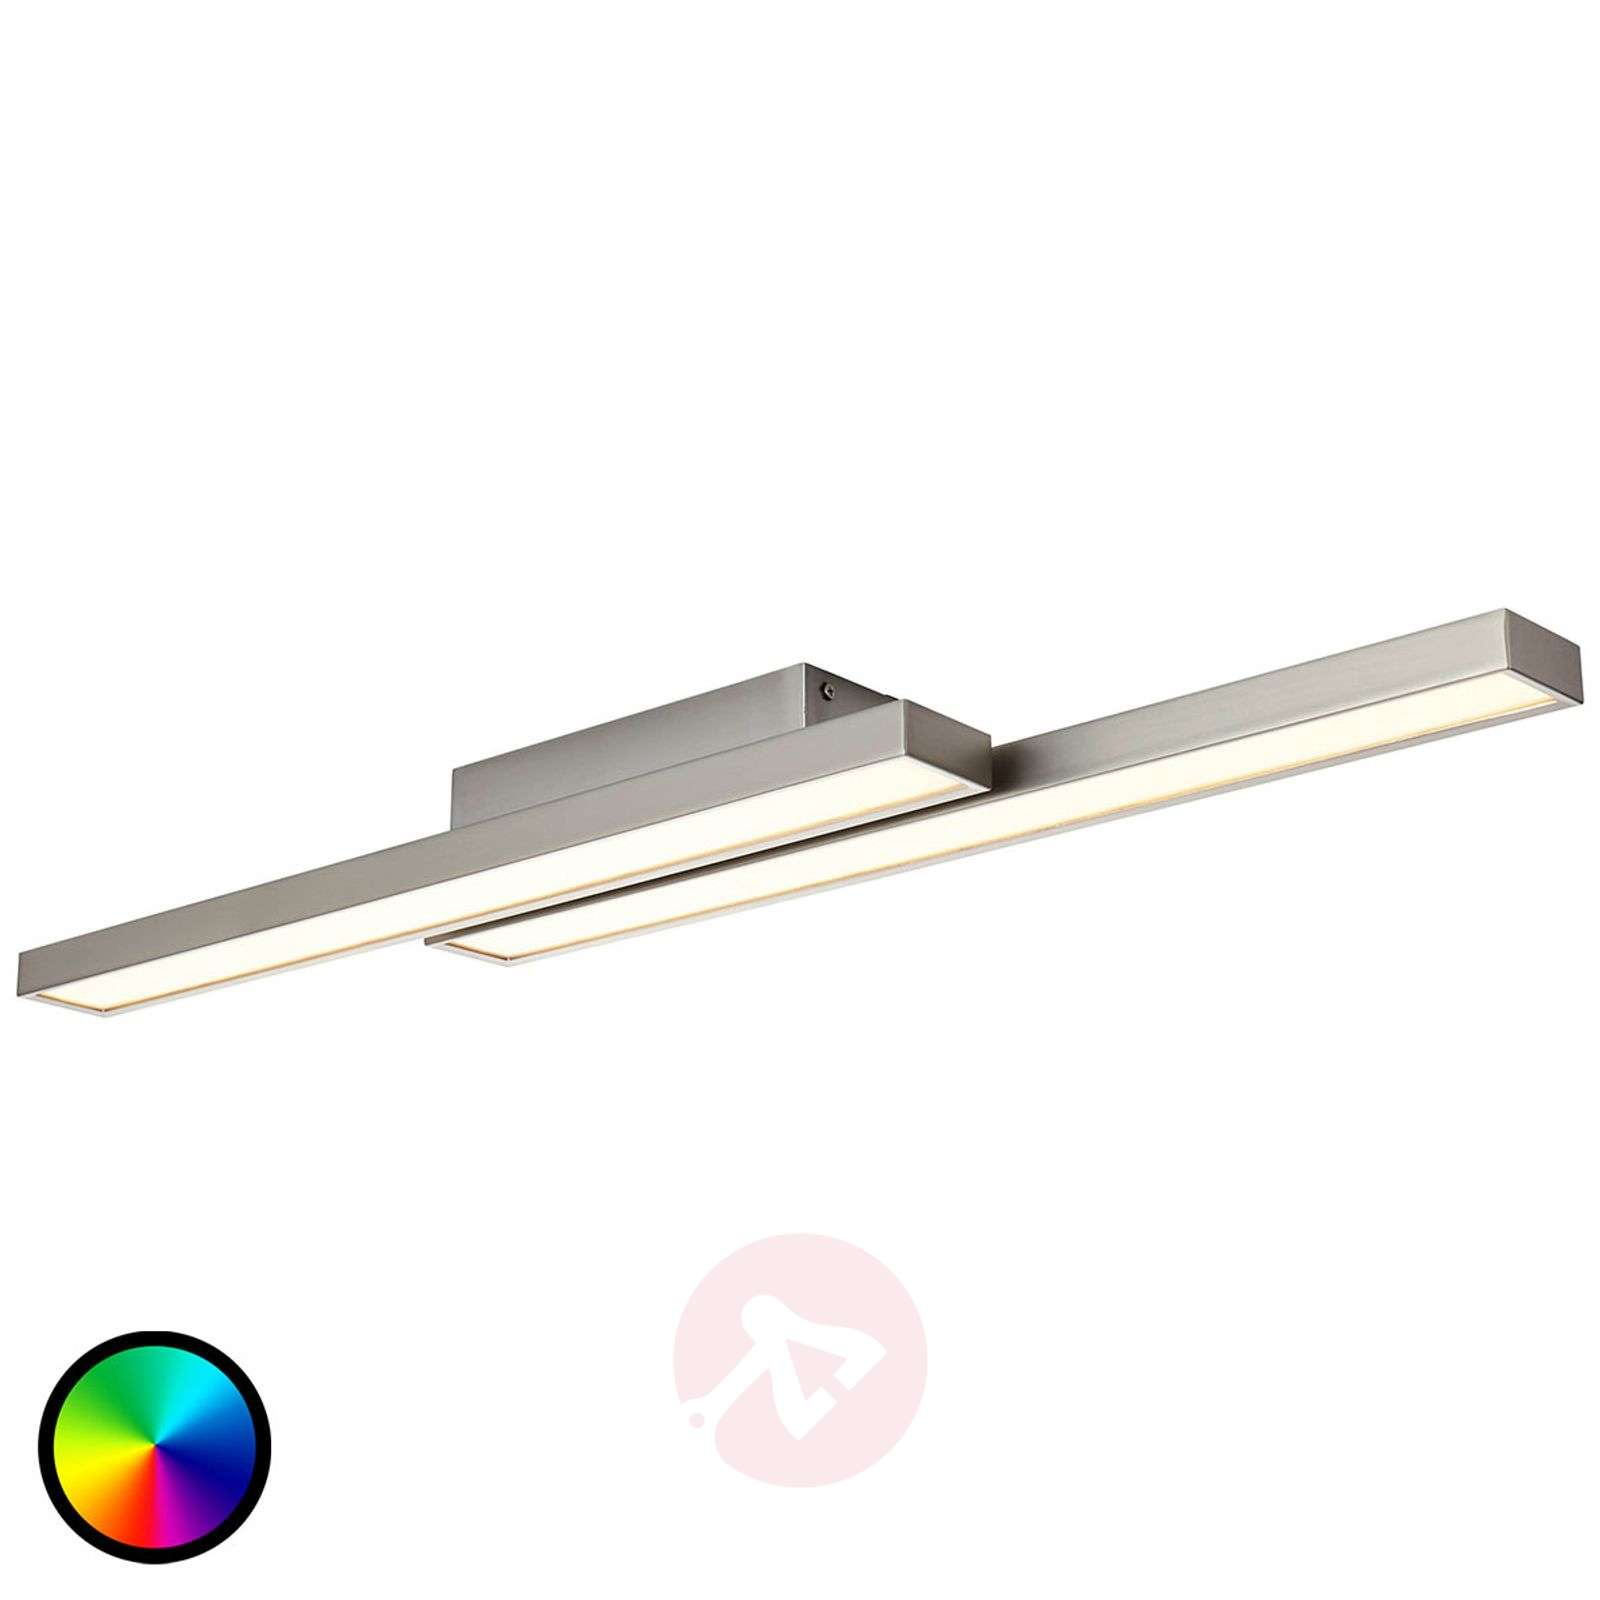 Bedienbare Brillliant WiZ LED plafondlamp Sword-1509476-01